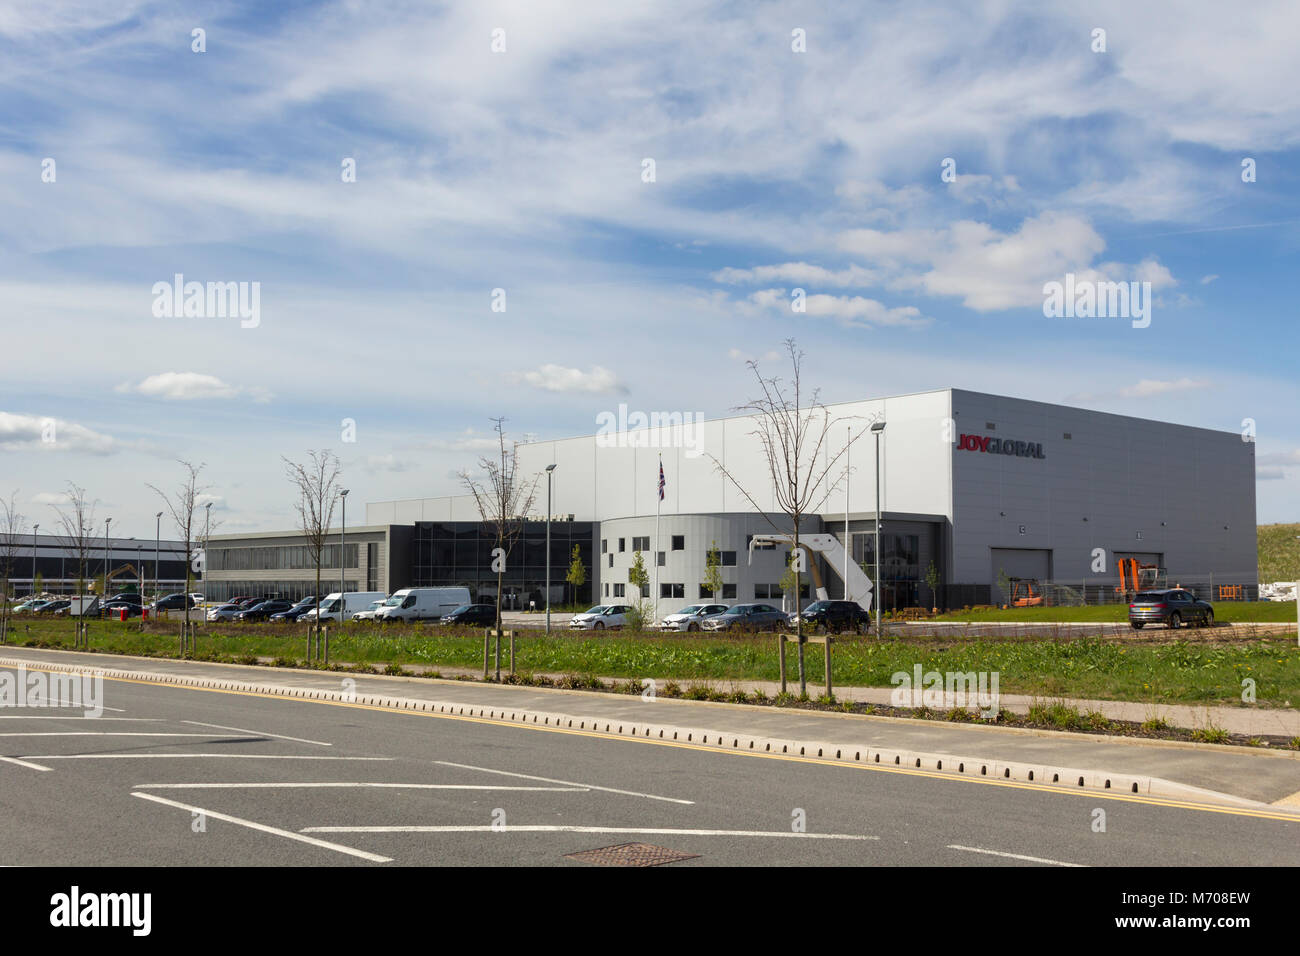 Newly built manufacturing facility for Joy Global mining equipment manufacturer at the Logistics North site, Bolton. - Stock Image